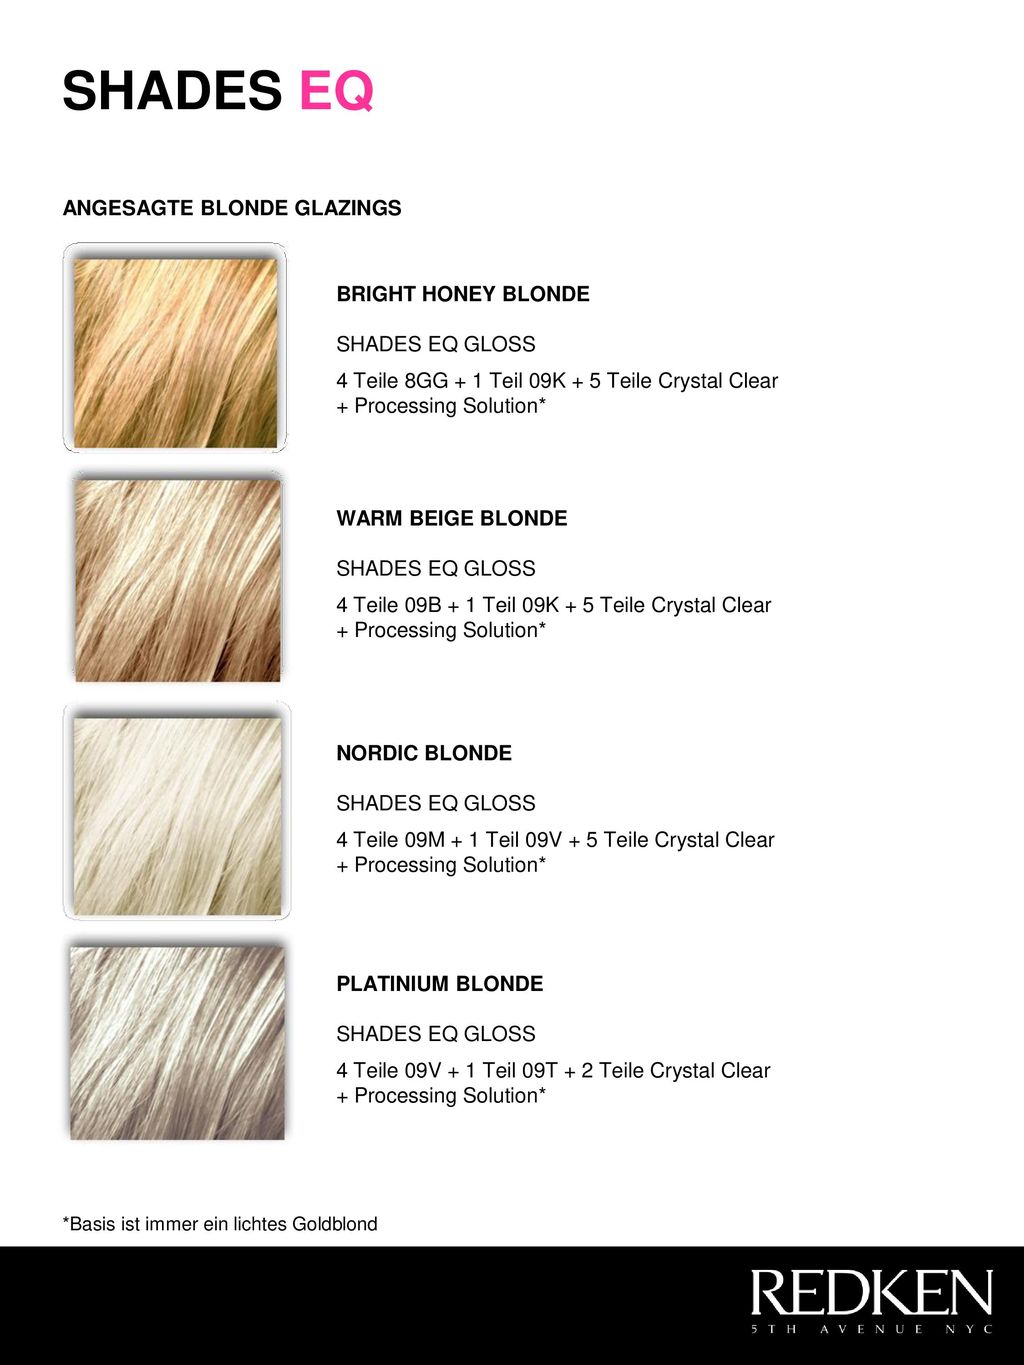 SHADES EQ ANGESAGTE BLONDE GLAZINGS BRIGHT HONEY BLONDE